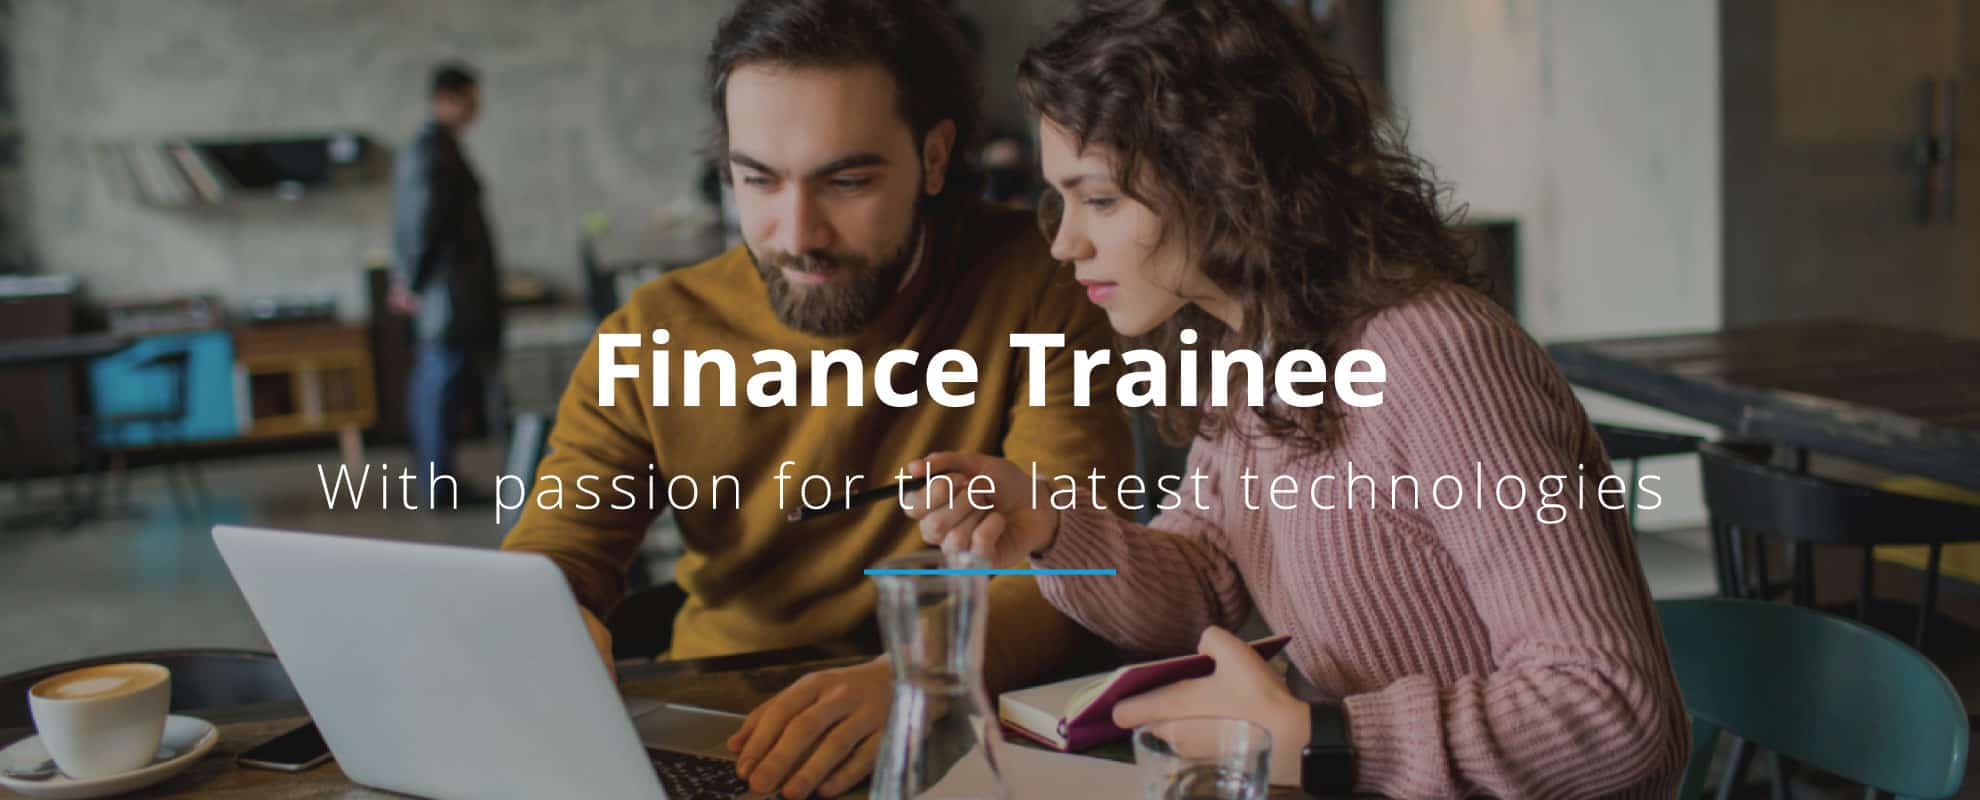 Finance Trainee - Connective